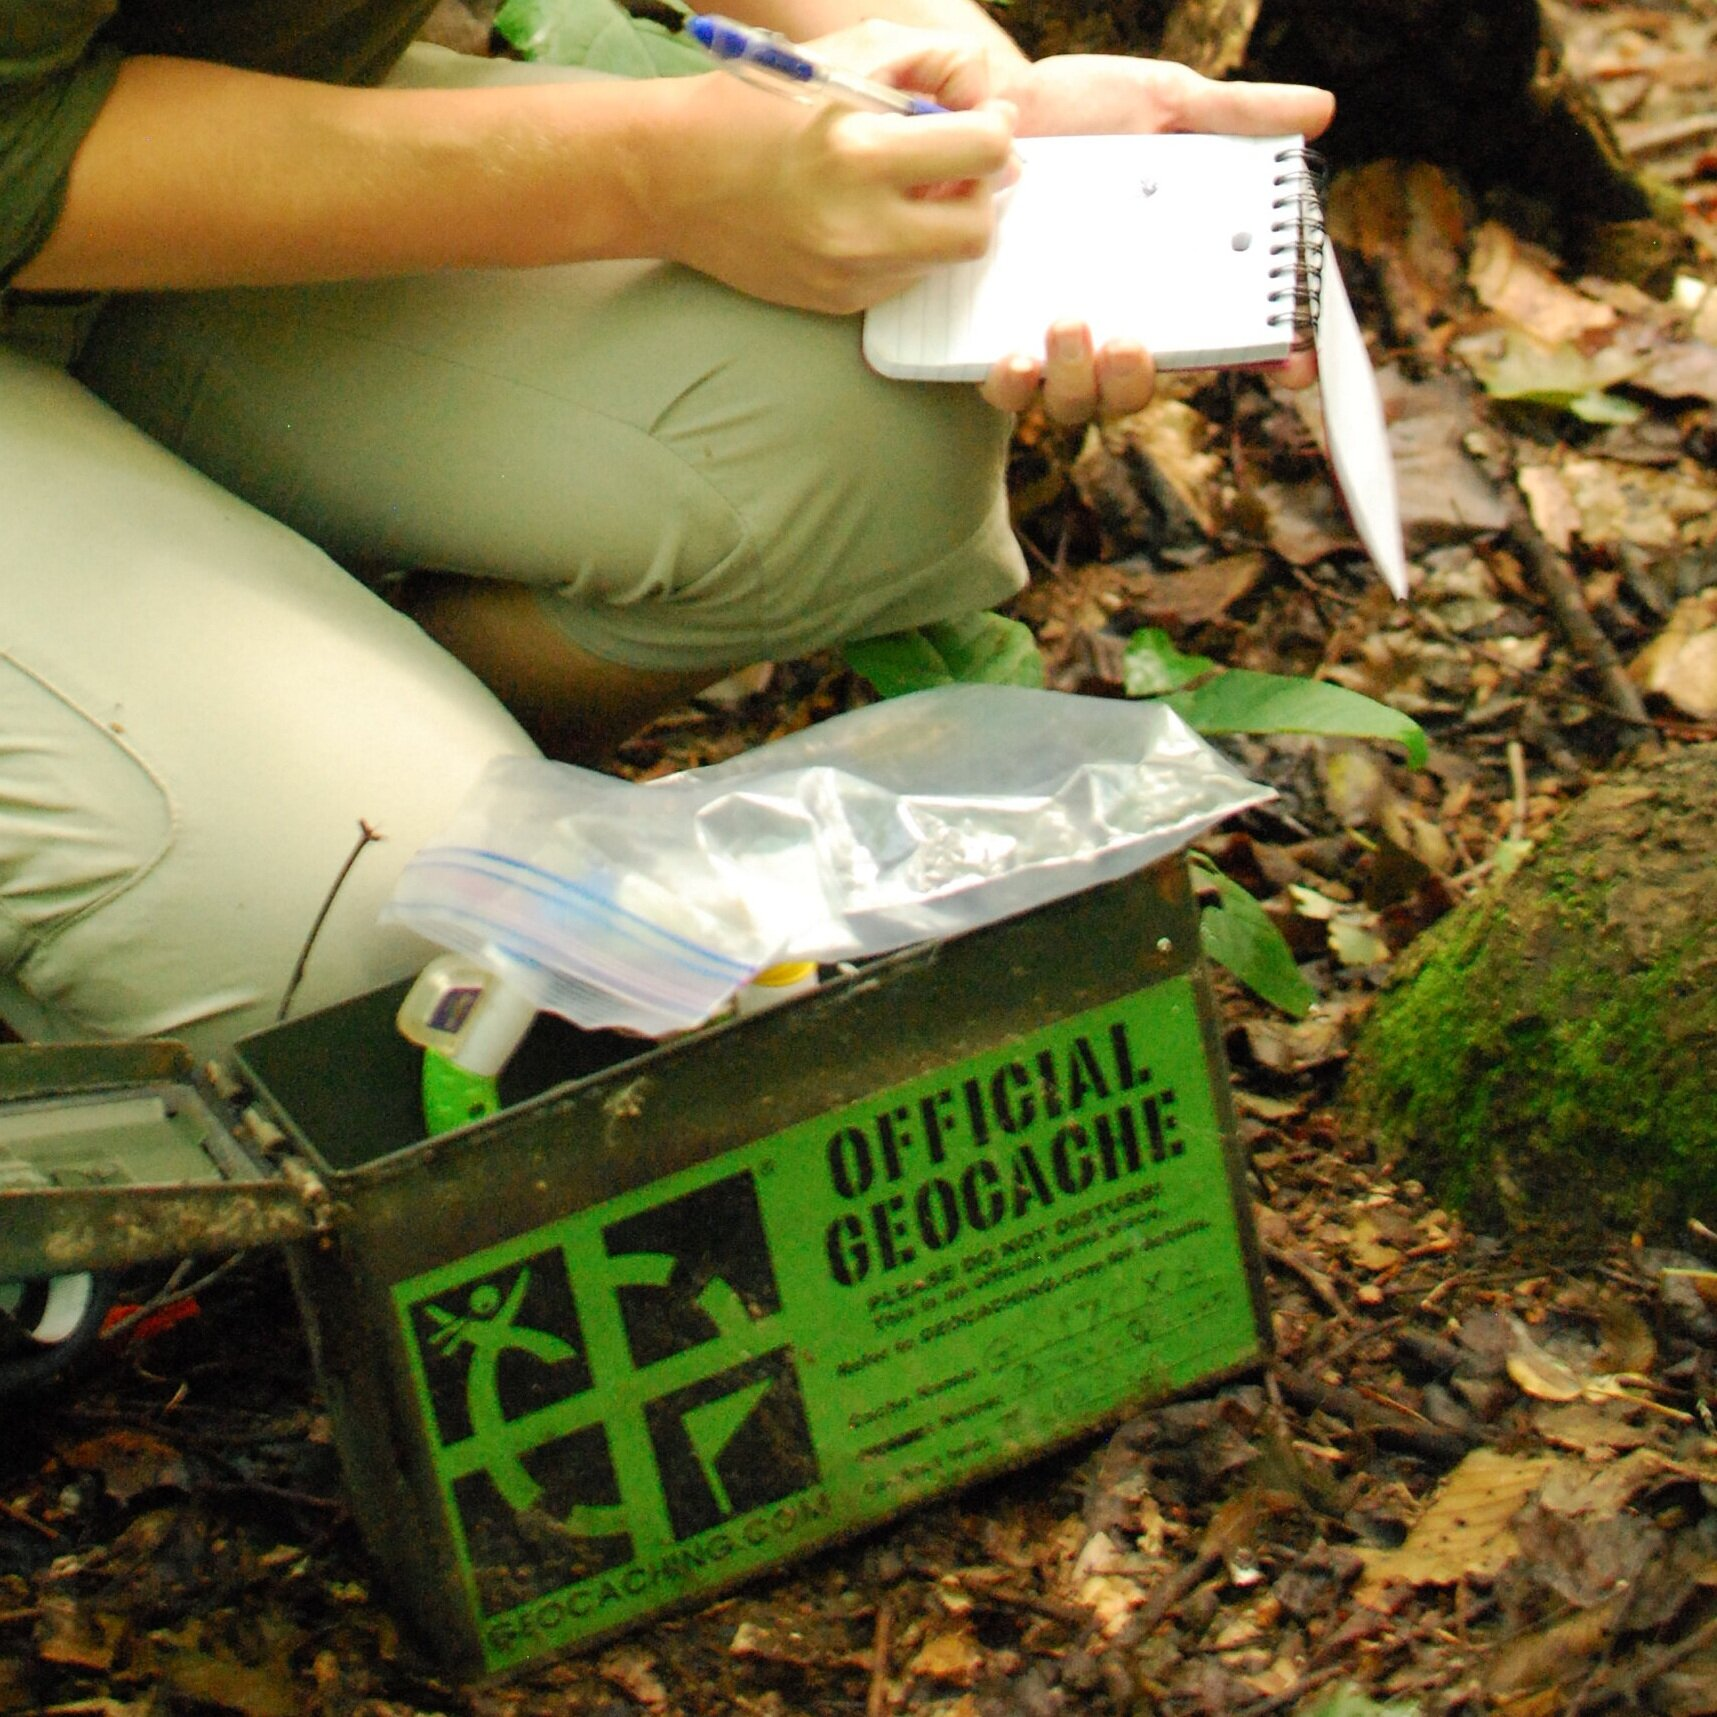 What's the Cache? - Geocachers turn hiking into a forest treasure hunt.(American Forests Magazine, 2014)